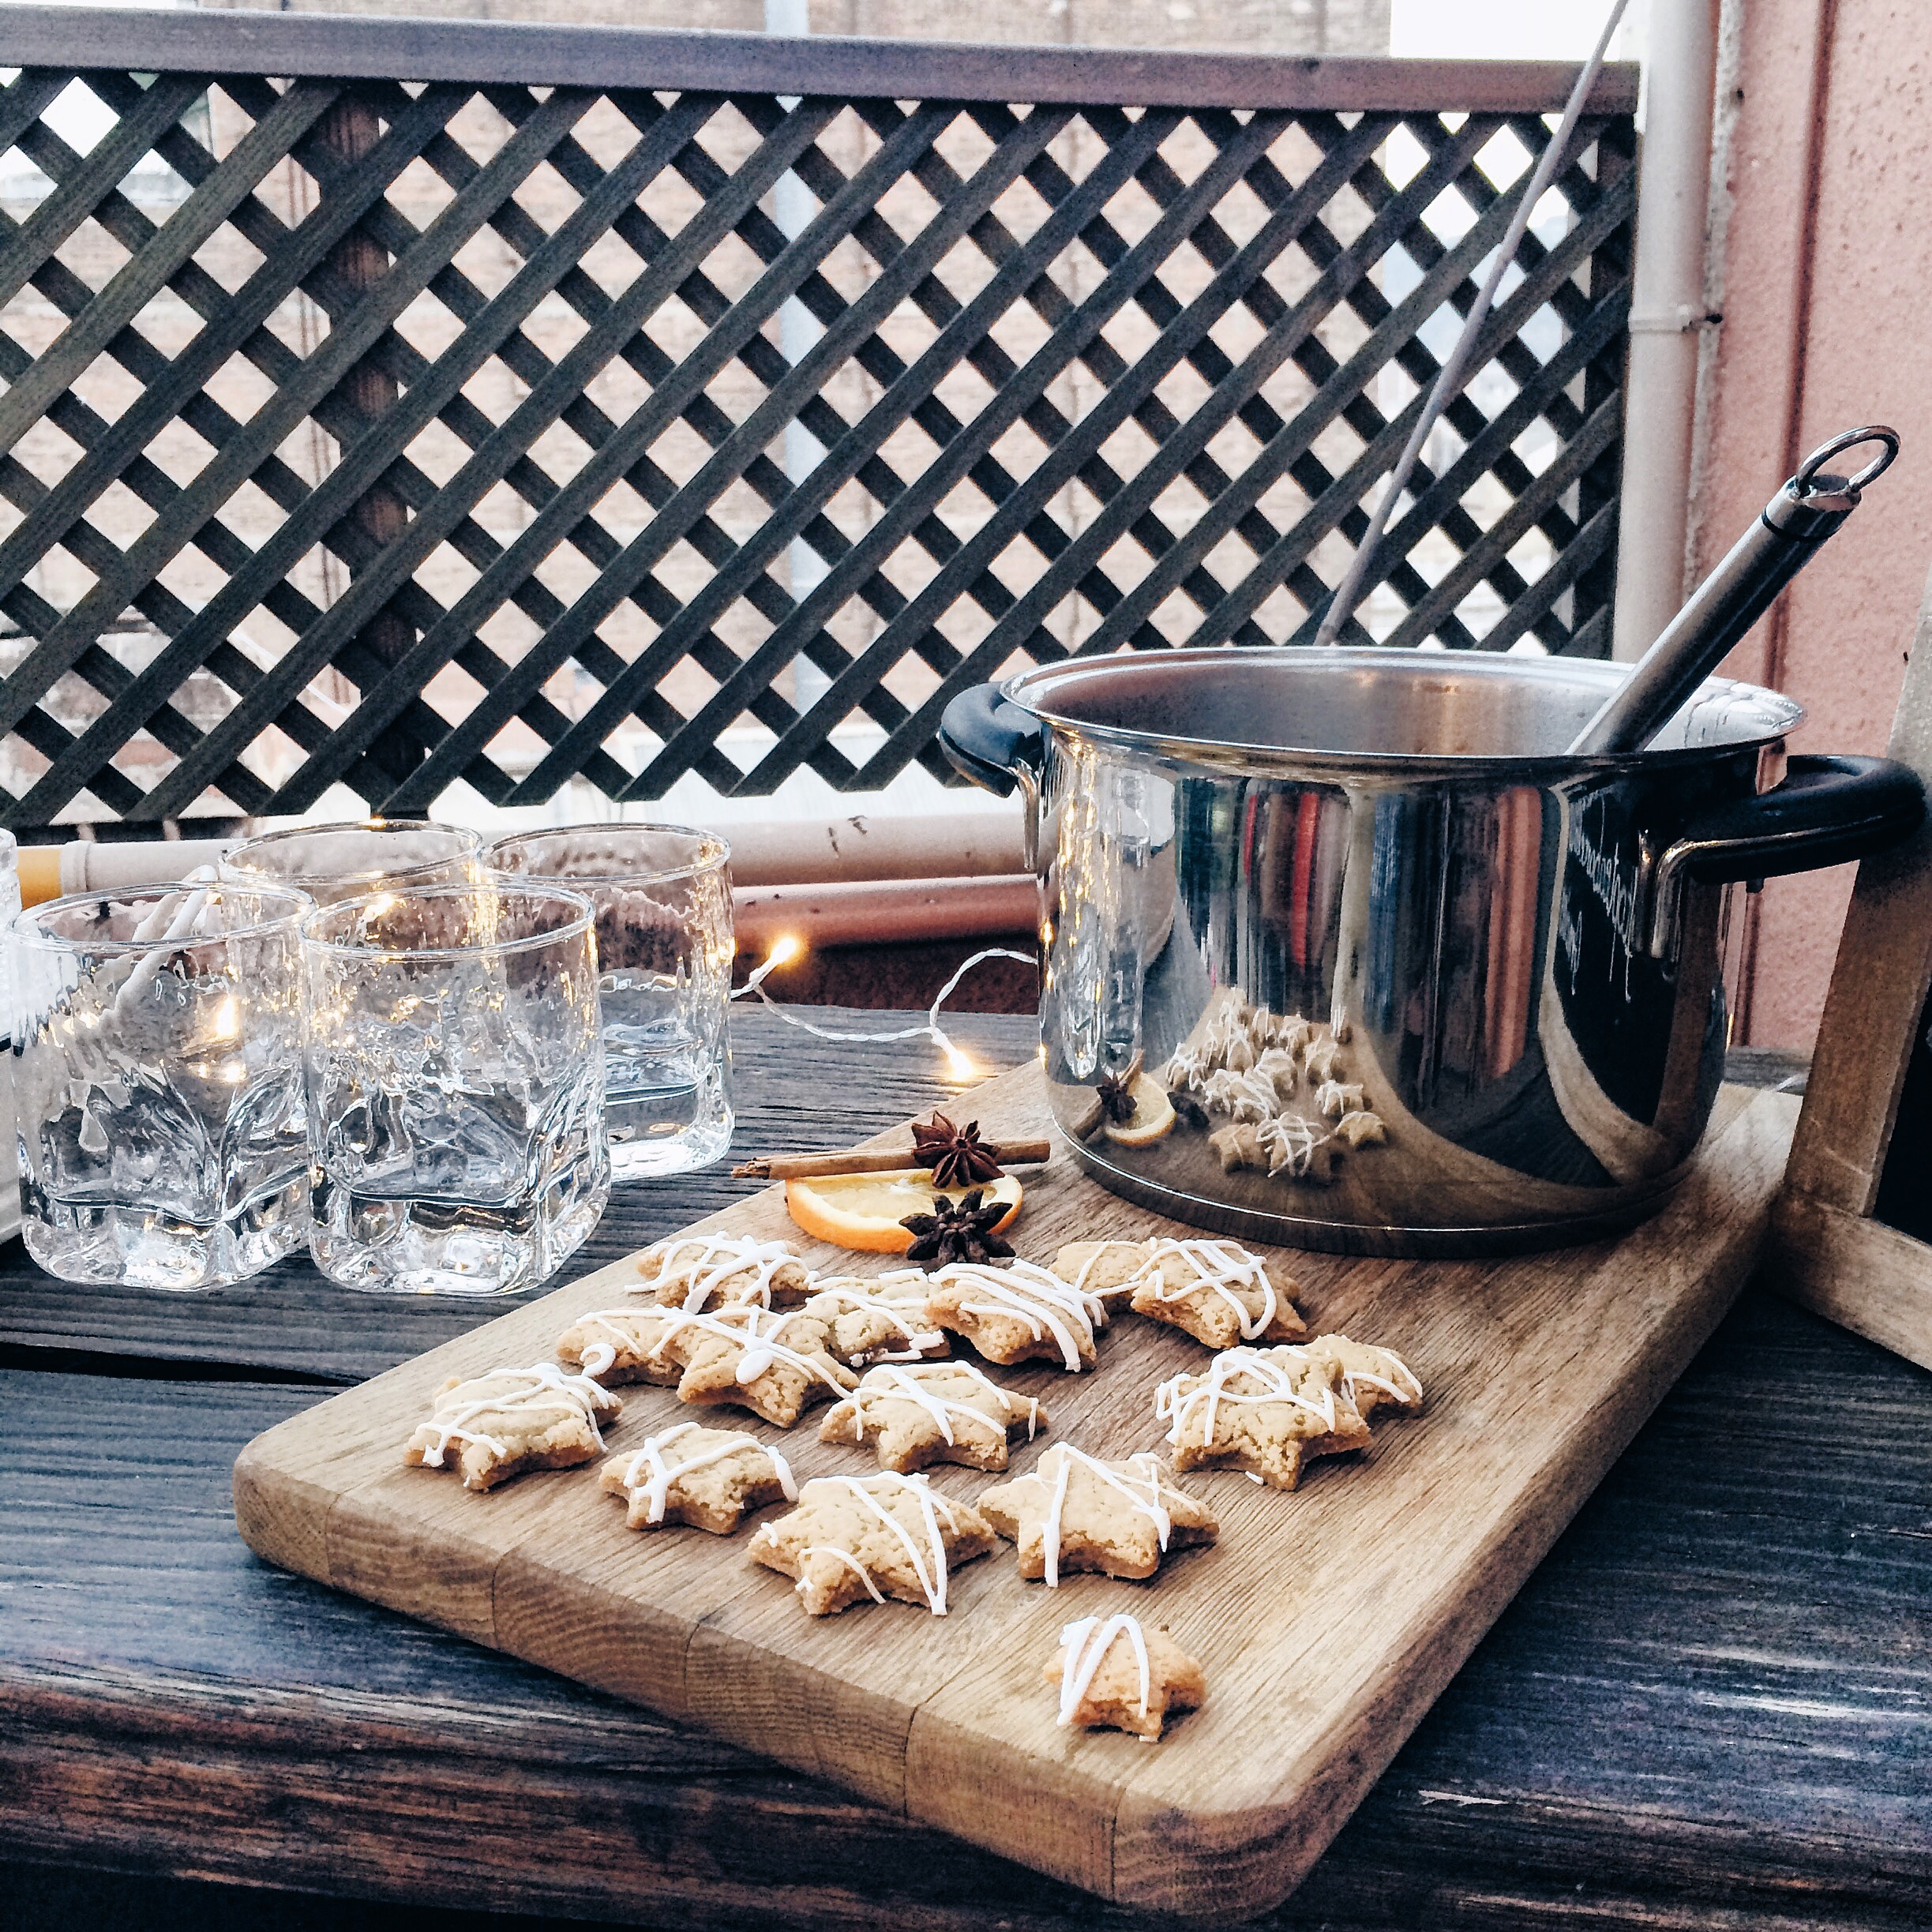 Mulled wine and cookies at Rooftop Tea Barcelona